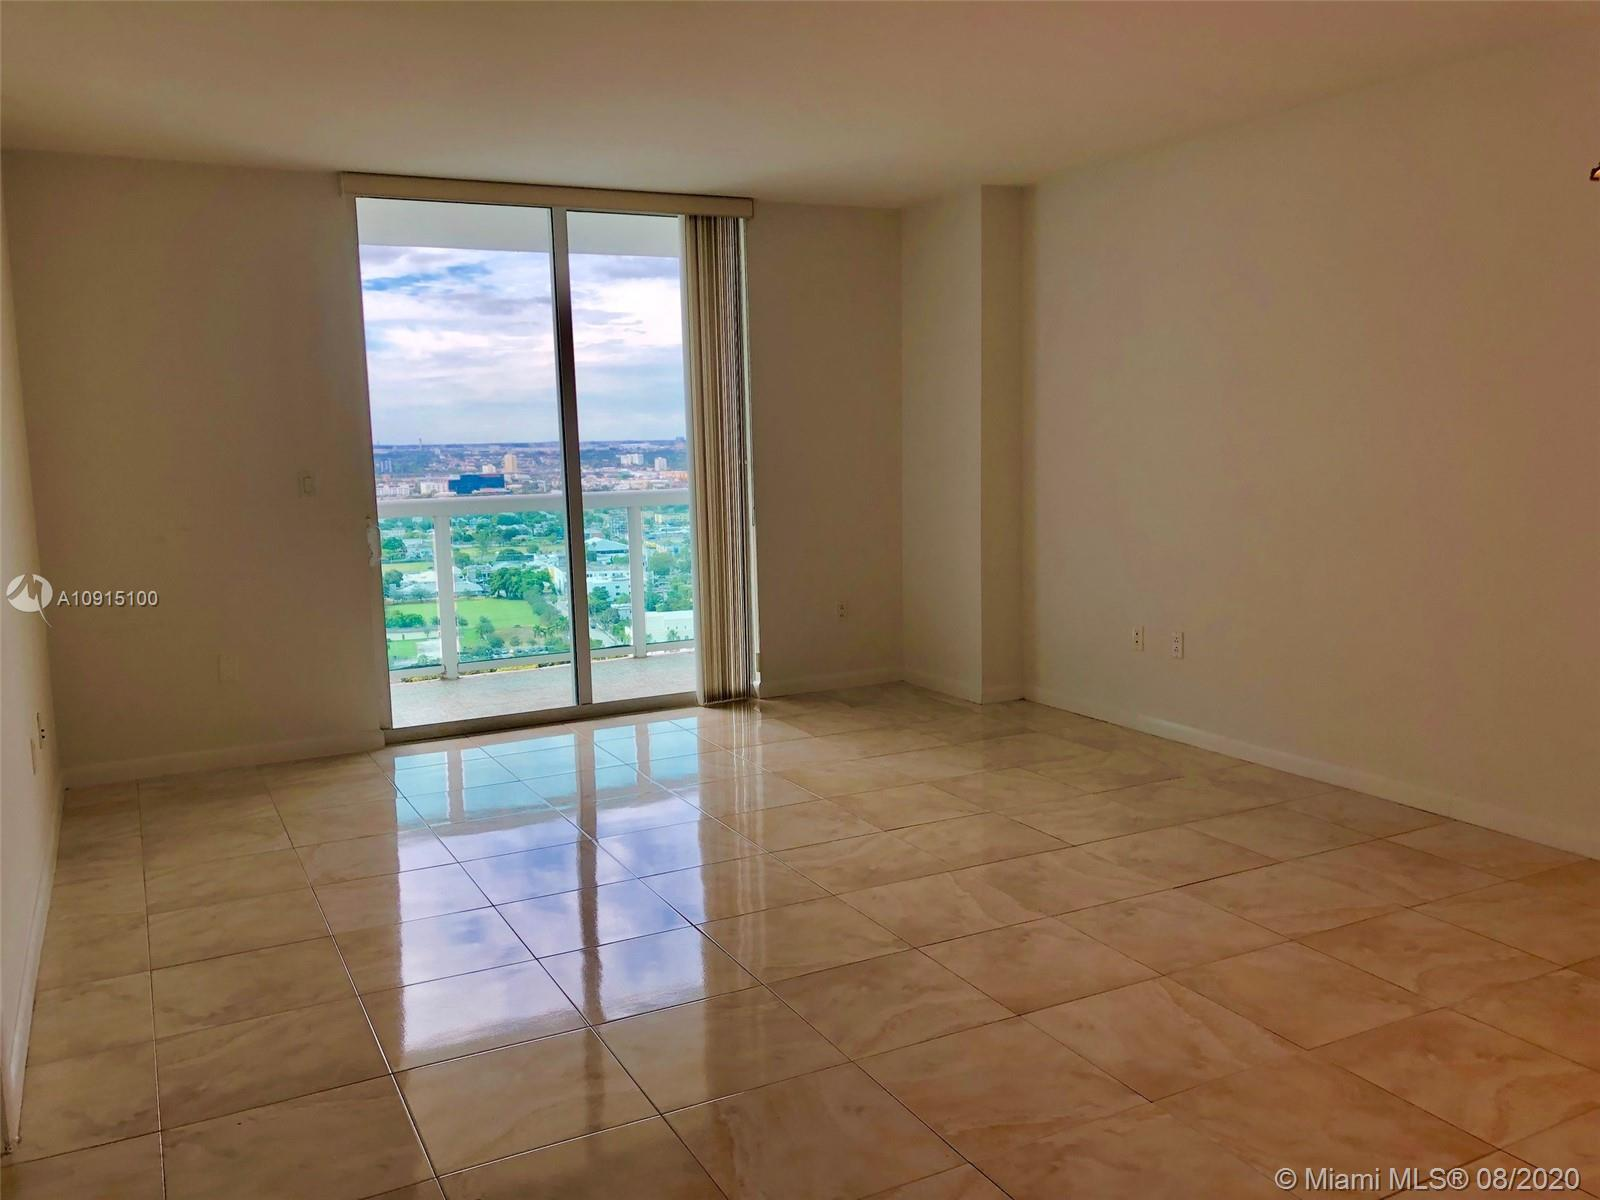 COME LIVE AT THE 1800 CLUB IN THIS BEAUTIFUL UNIT OVERLOOKING THE POOL AREA W/842 UNDER AC + 166 SQFT IN TERRACE. CABLE, HIGH SPEED INTERNET ACCESS, WATER & 1 PARKING SPACE INCLUDED IN RENT. SPECTACULAR STATE-OF-THE-ART-GYM & POOL OVERLOOKING THE BAY/OCEAN/SEA. BUILDING IS FULL SERVICE W/VALET, DOORMAN, CONCIERGE, POOL & GYM ATTENDENT, IN HOUSE MANAGEMENT TEAM & SO ON. WALK TO PARK, RESTAURANTS, CAFES, NIGHTLIFE, BANKS, PUBLIX, PUBLIC TRANSPORTATION & SO MUCH MORE.5 MINUTES TO DOWNTOWN/BRICKELL, WYNWOOK, DESIGN DISTRICT, HEALTH DISTRICT & SOUTH BEACH. EASY ACCESS TO ALL MAJOR HIGHWAYS. VERY EASY TO SHOW CALL NOWWWWWWWW!!!!